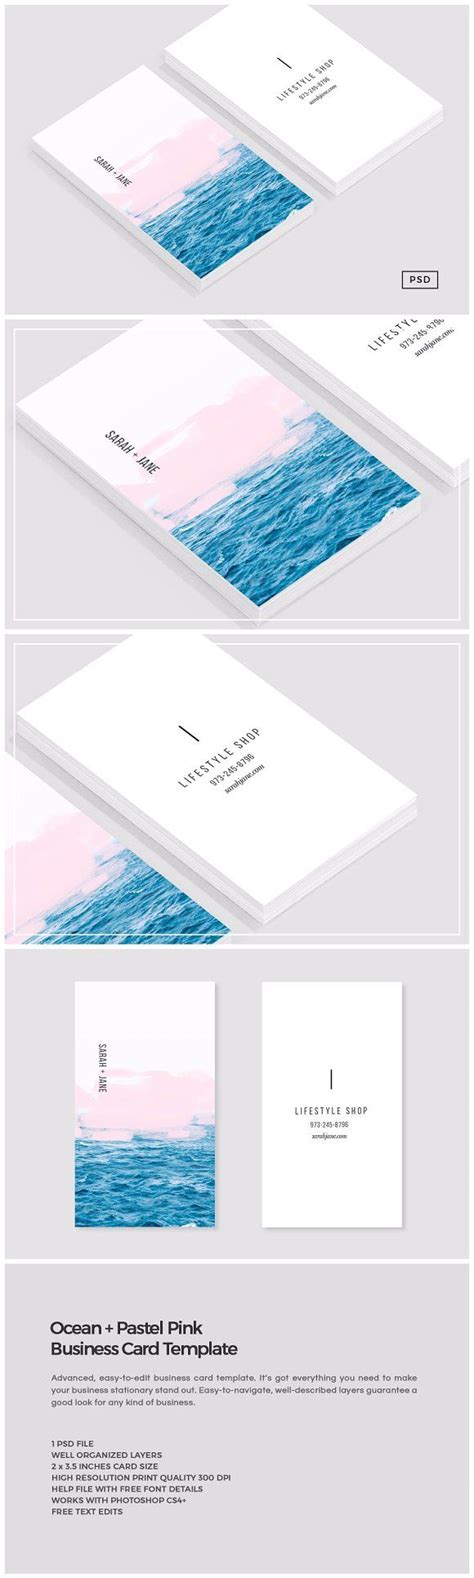 business card template size cm what is business card